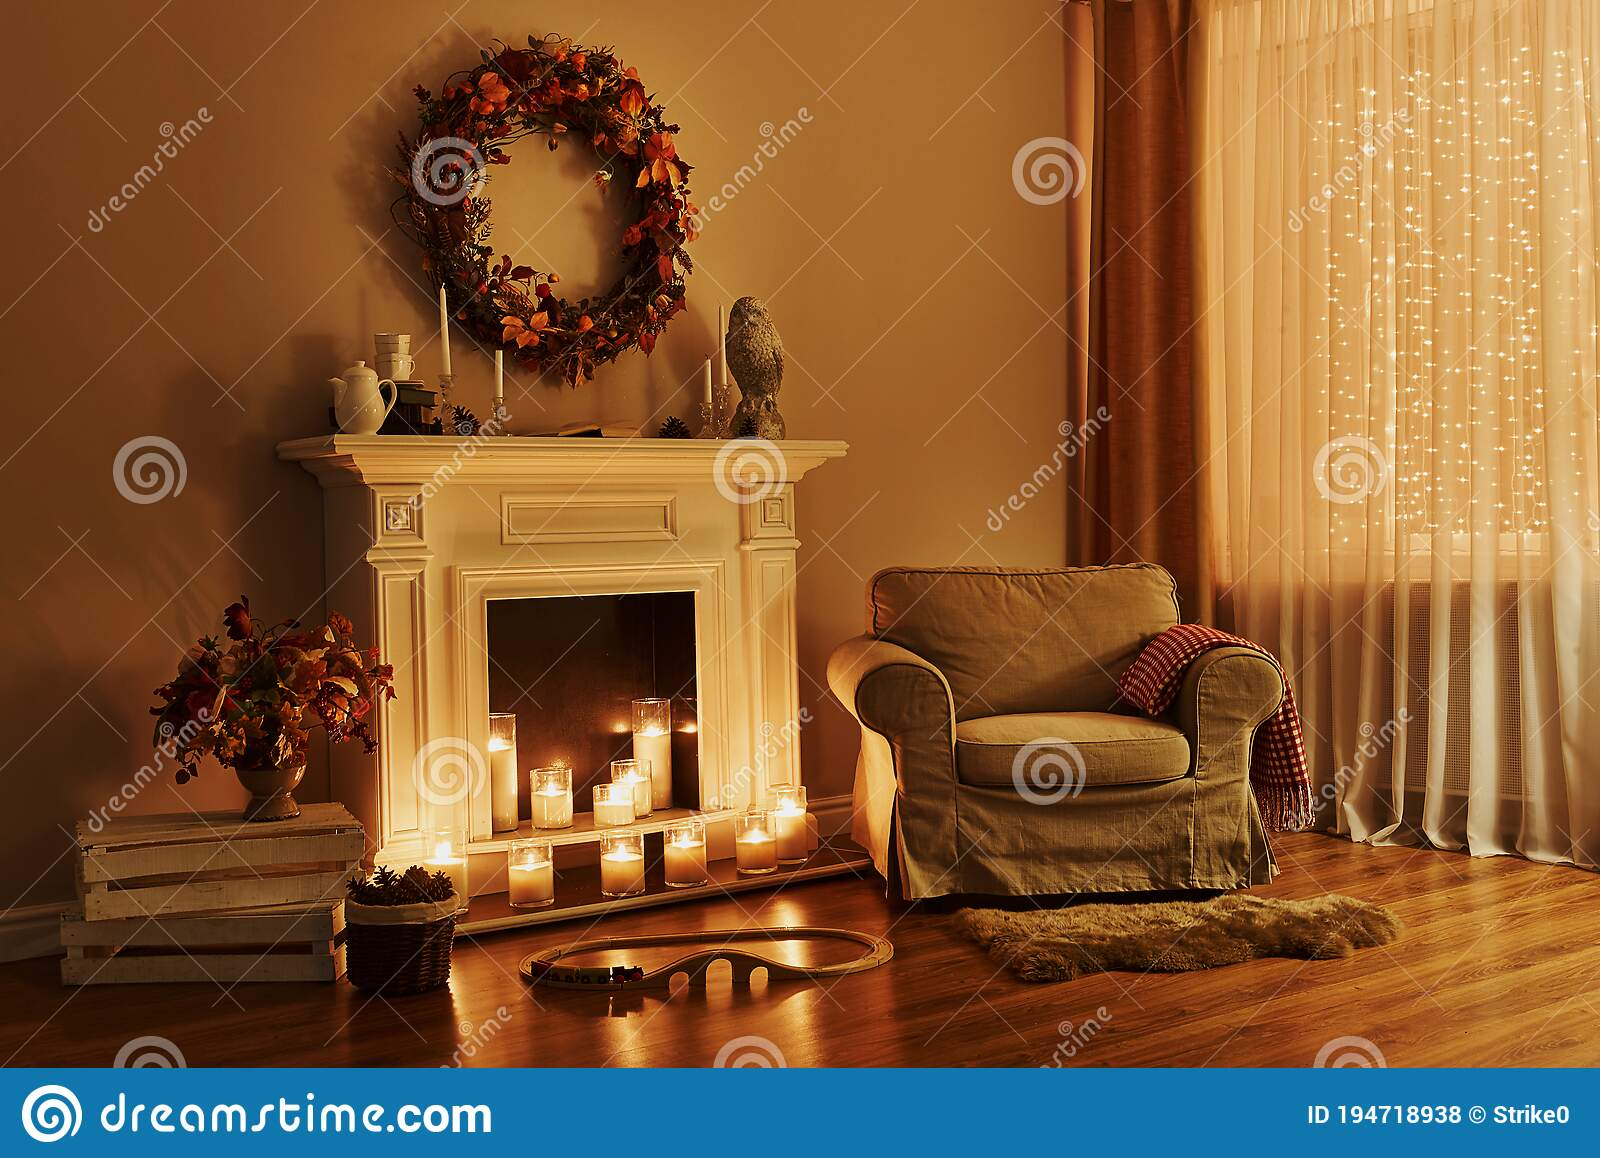 Cozy Fireplace With Armchair Interior In A Cozy House Stock Photo Image Of Design Decoration 194718938